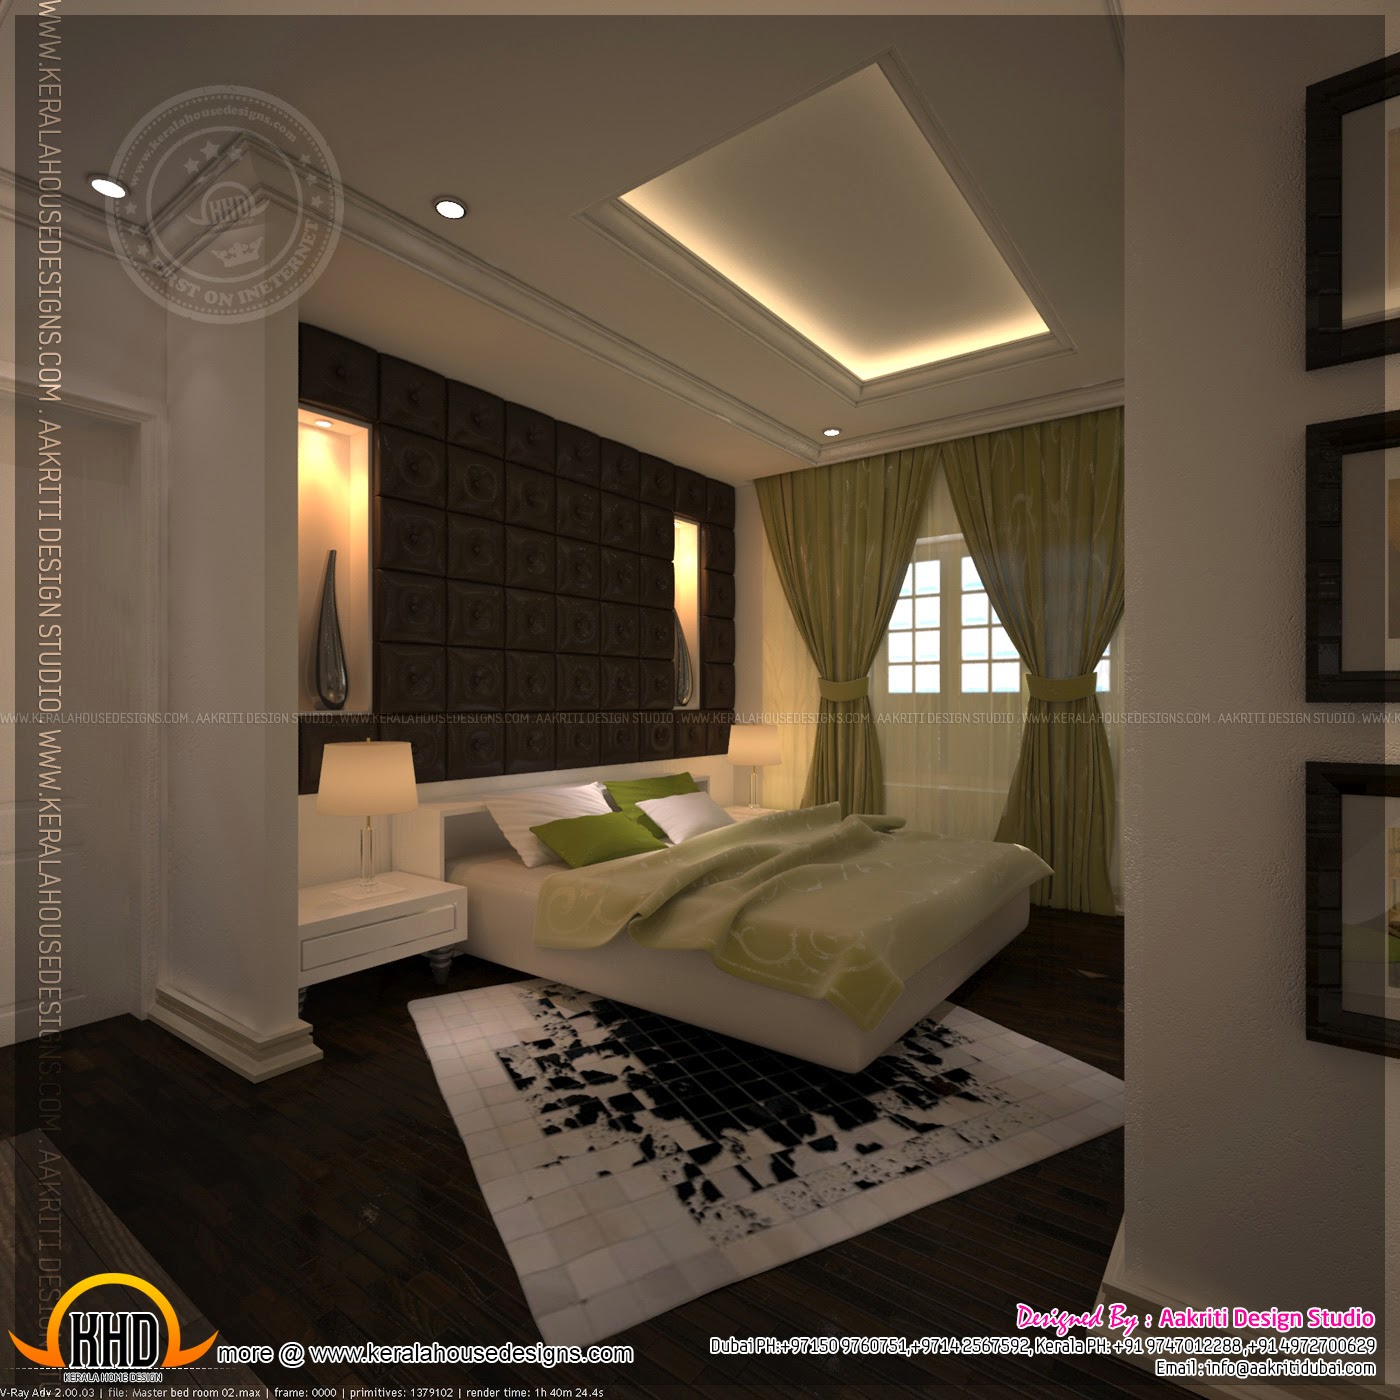 Master bedroom and bathroom interior design kerala home for Bedroom interior design